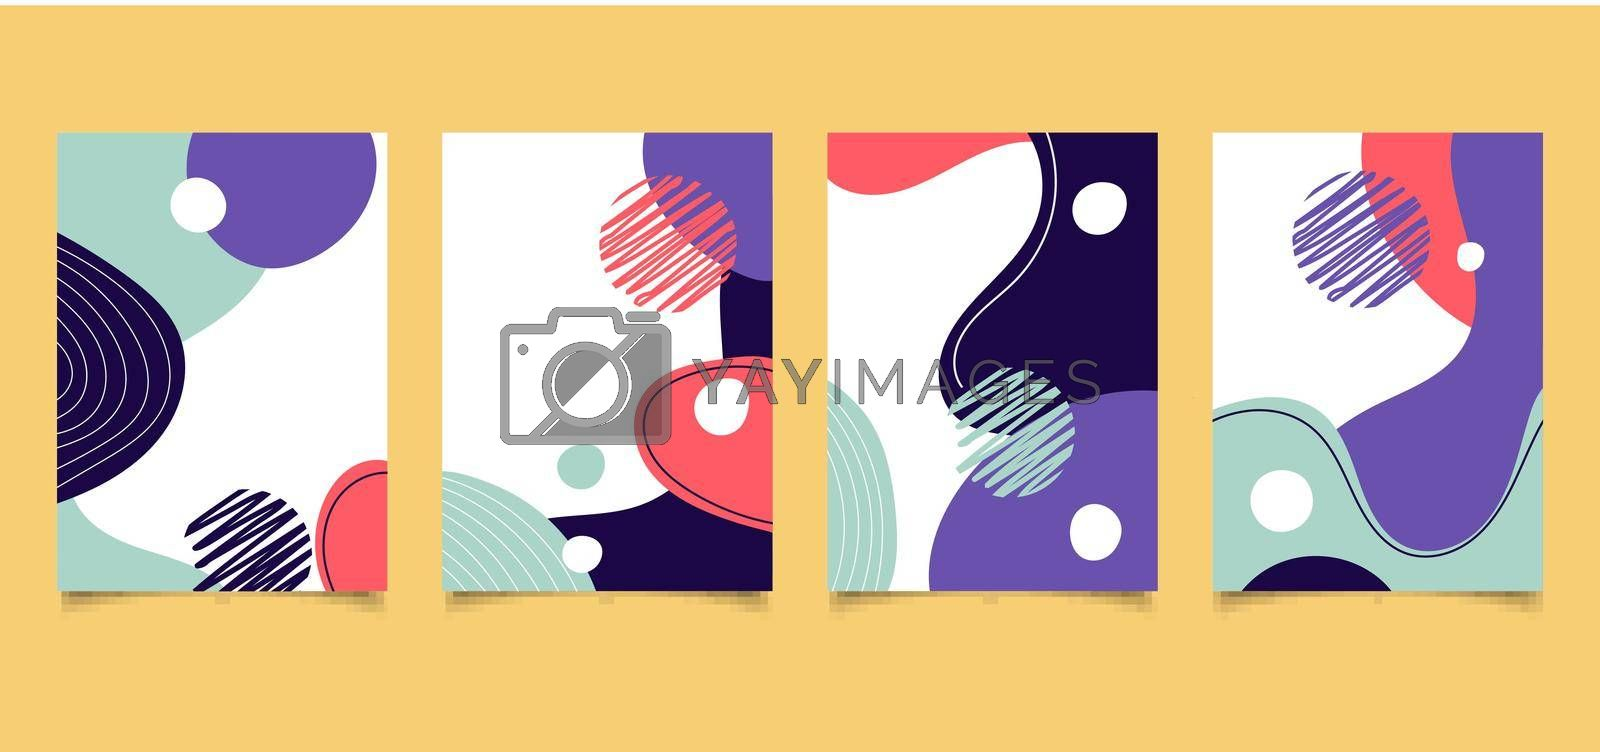 Set of creative cover brochure design colorful liquid shape pattern with lines on white background space for your text. Social media banner template. Mockup for stories, post, blog, promotion, etc. Vector illustration